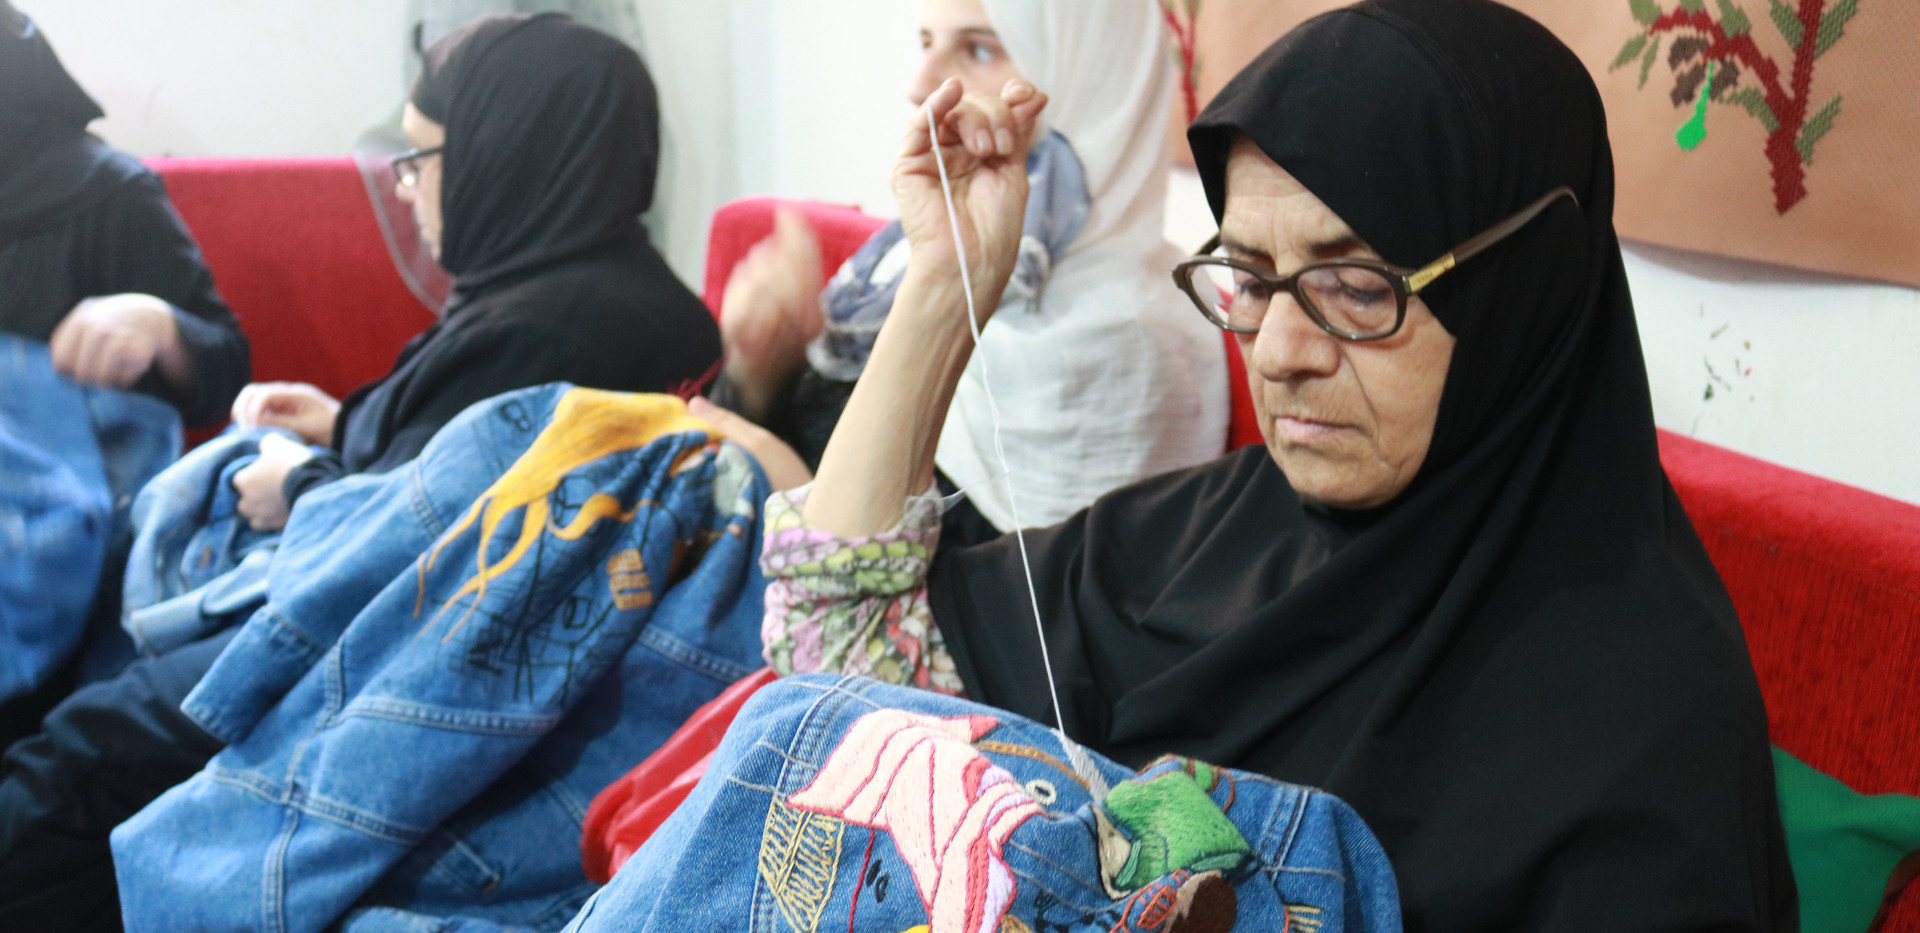 Palestinian refugee woman was sewing a pattern on a jean jacket to make a living. The pattern tells a love story that happened in Shatila.  She was born in Syria as a refugee and fled to Lebanon to seek safety after the outbreak of the Syrian civil war. .JPG